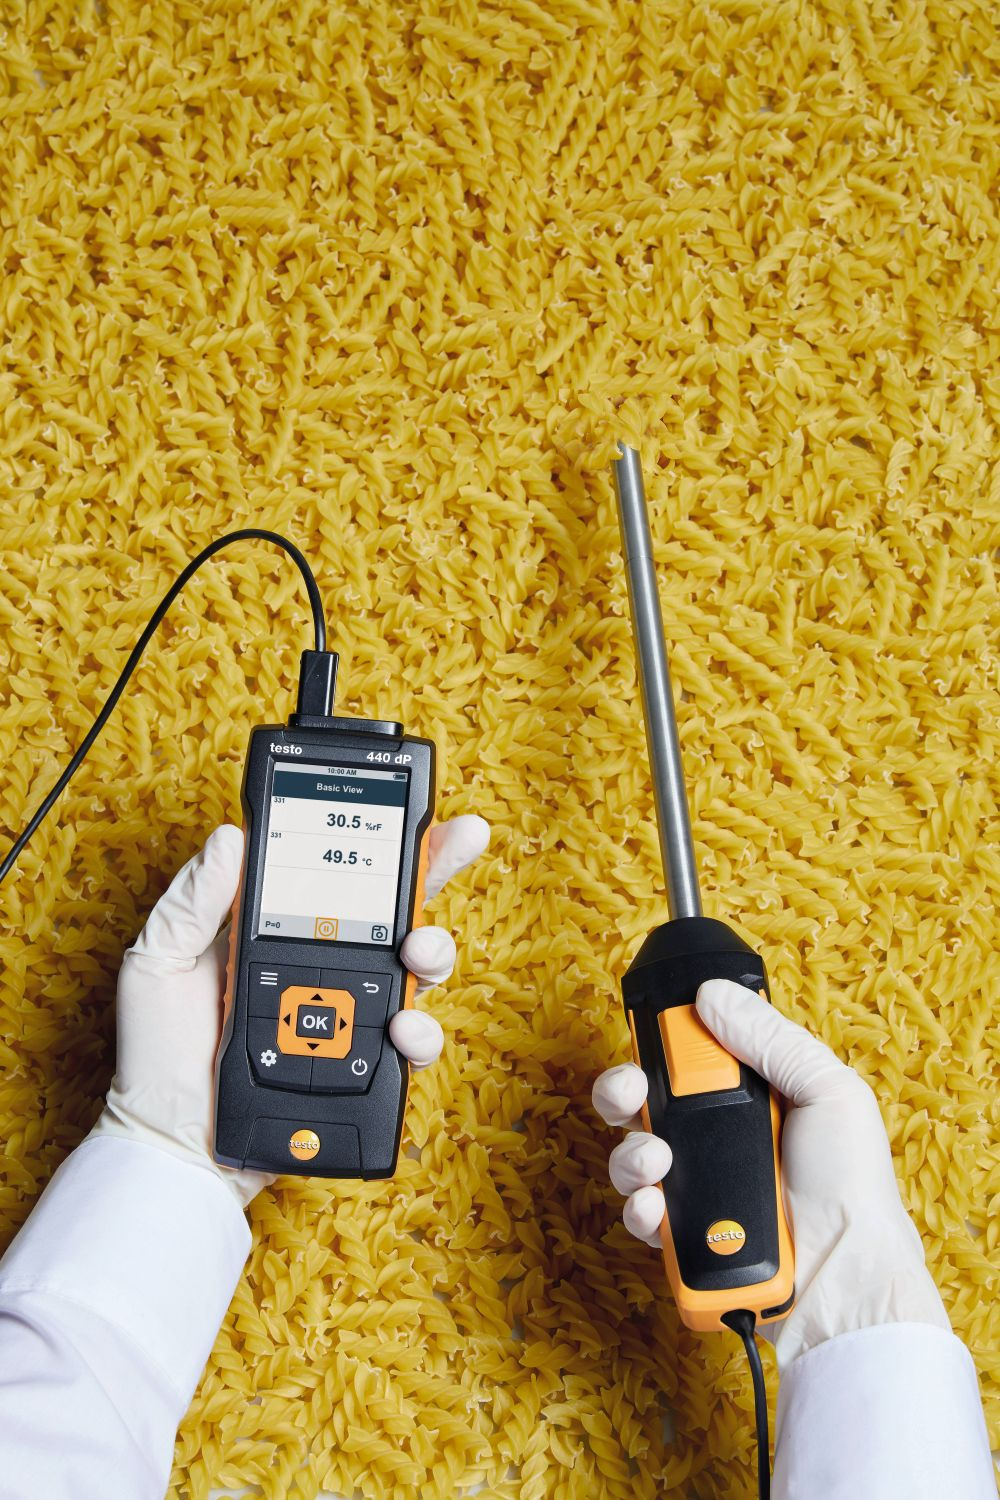 Humidity measurements in bulk materials with robust humidity probe and testo 440